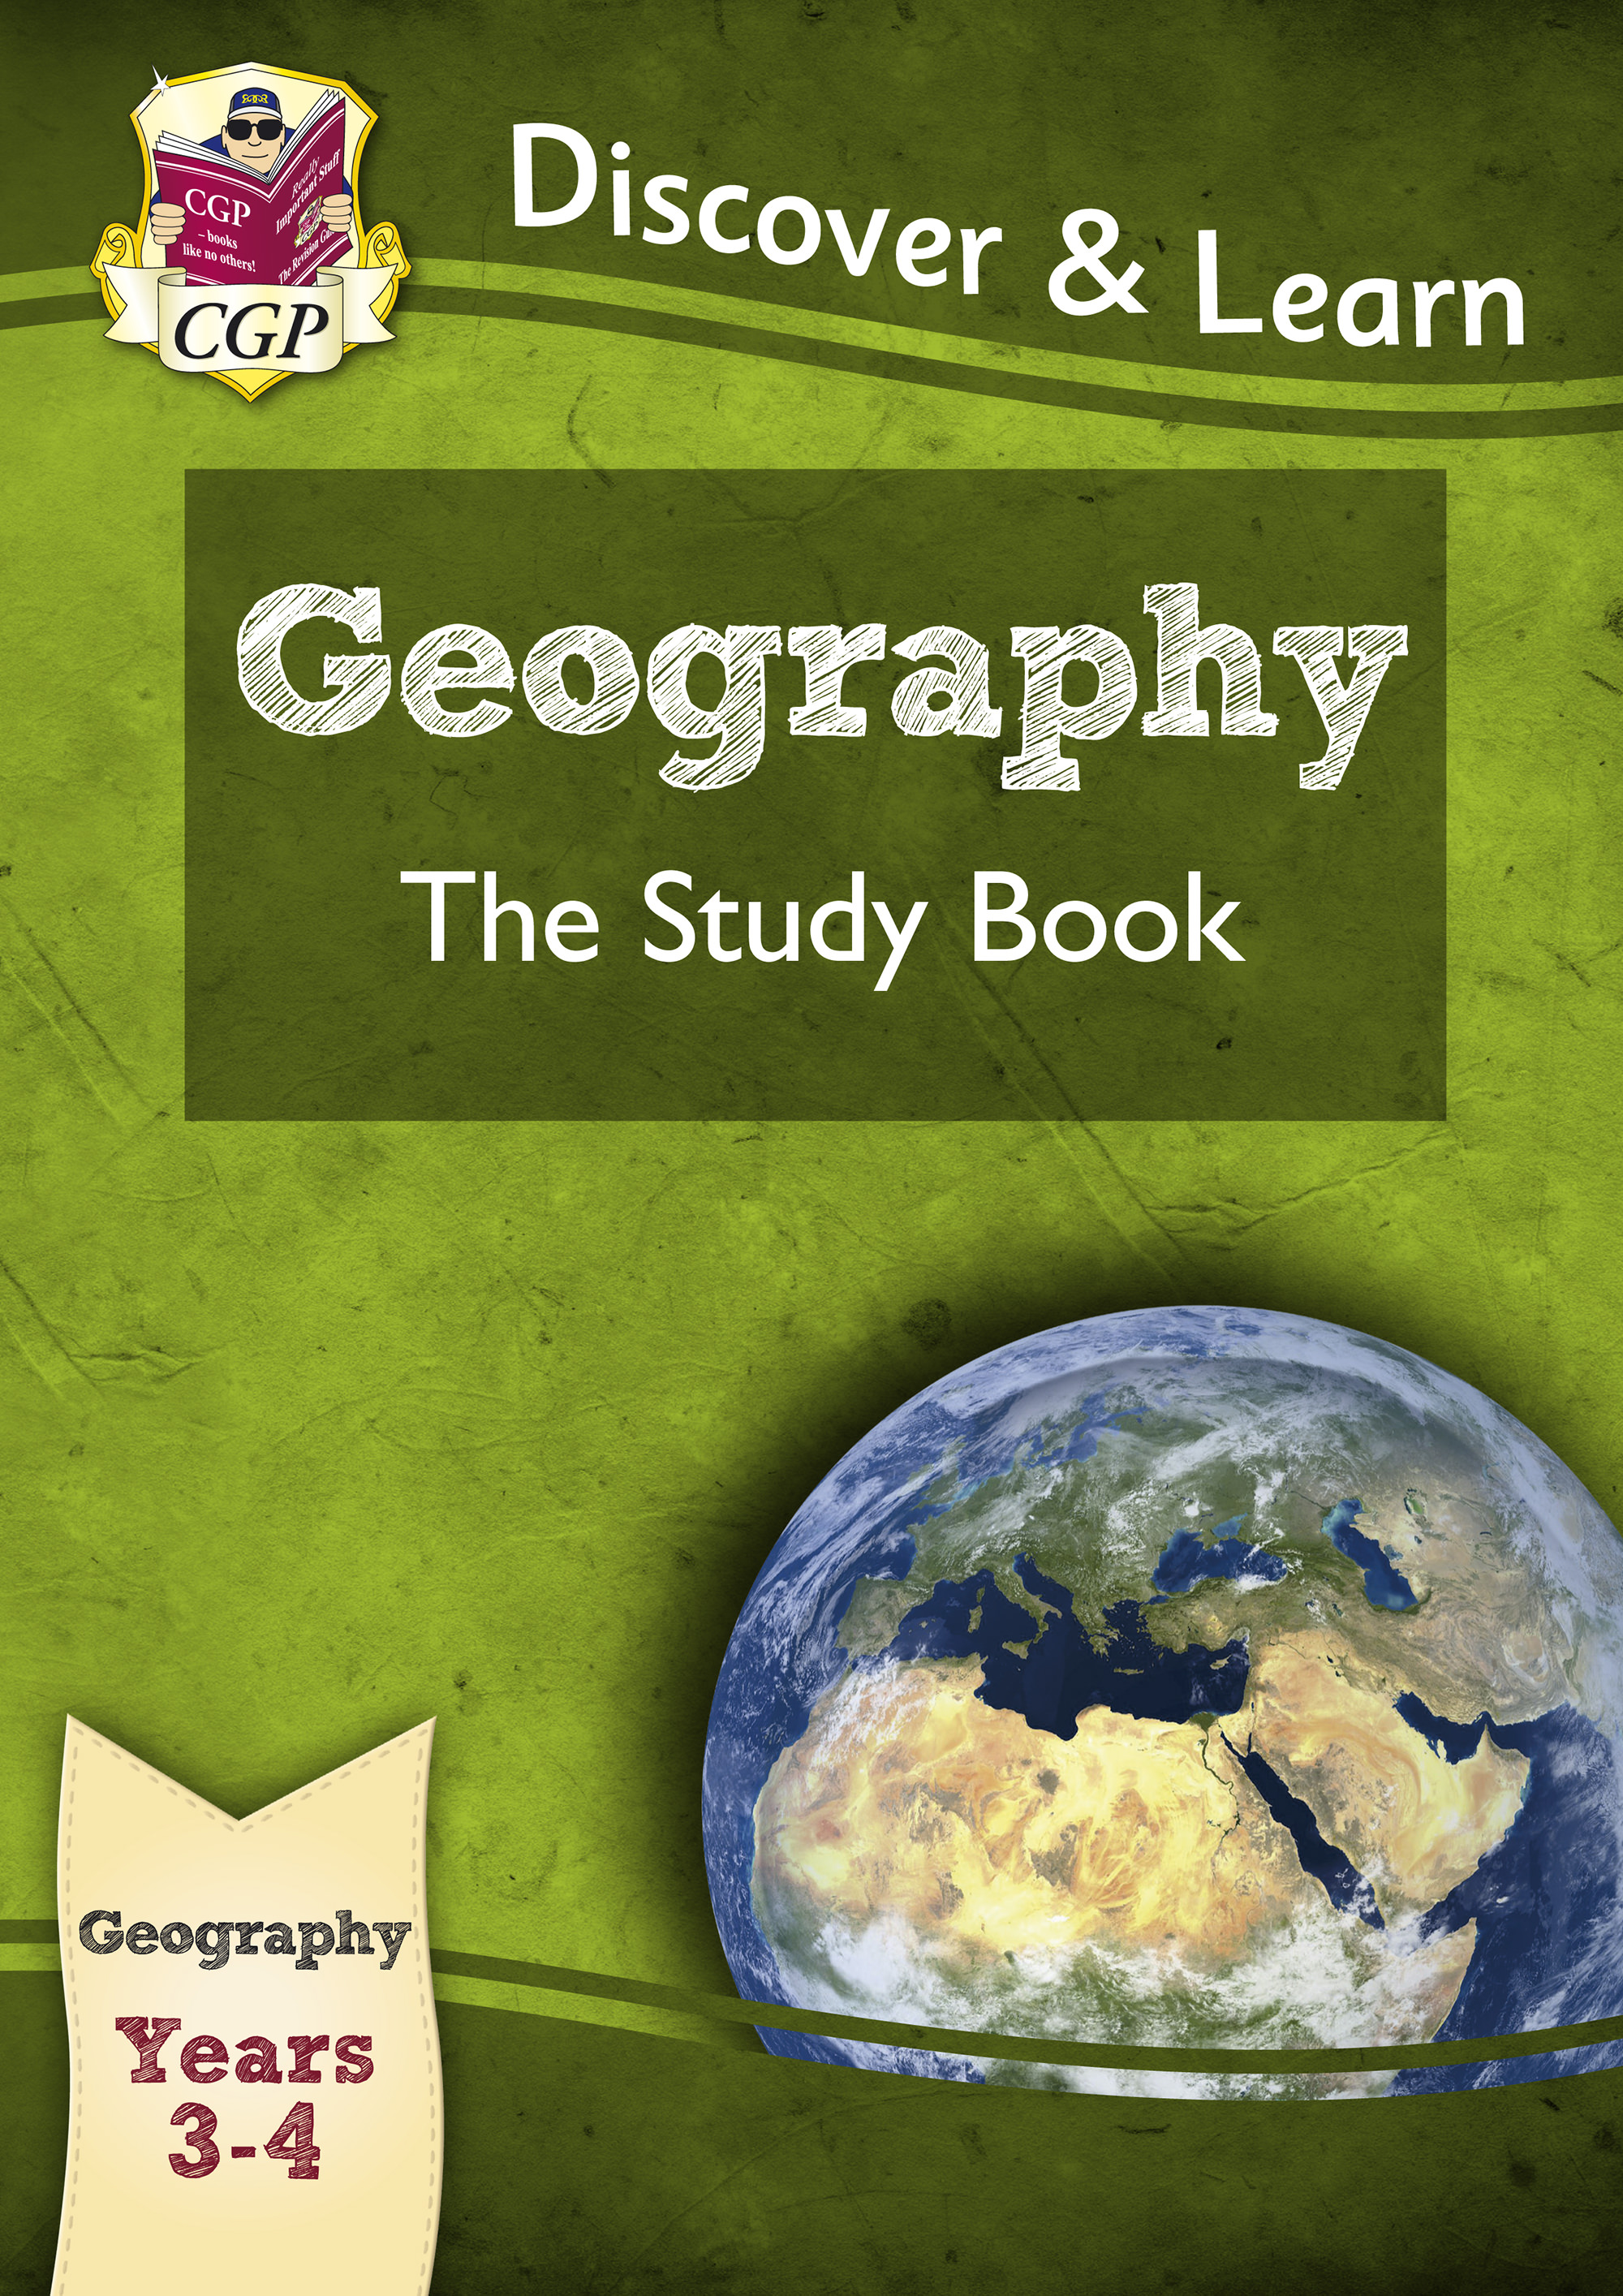 G1R21 - KS2 Discover & Learn: Geography - Study Book, Year 3 & 4